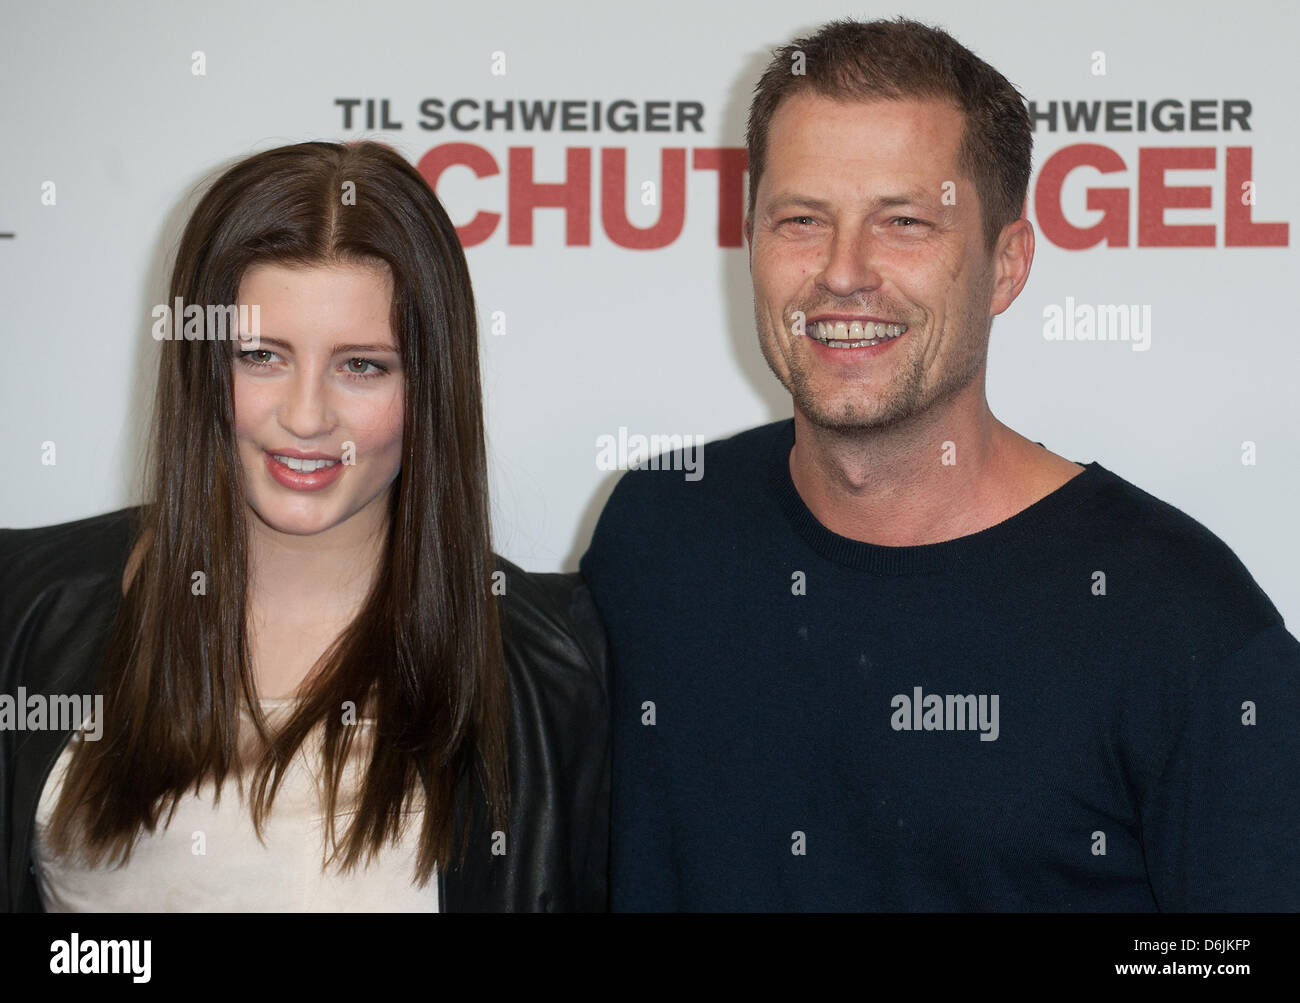 actor til schweiger and his daughter luna pose during a. Black Bedroom Furniture Sets. Home Design Ideas